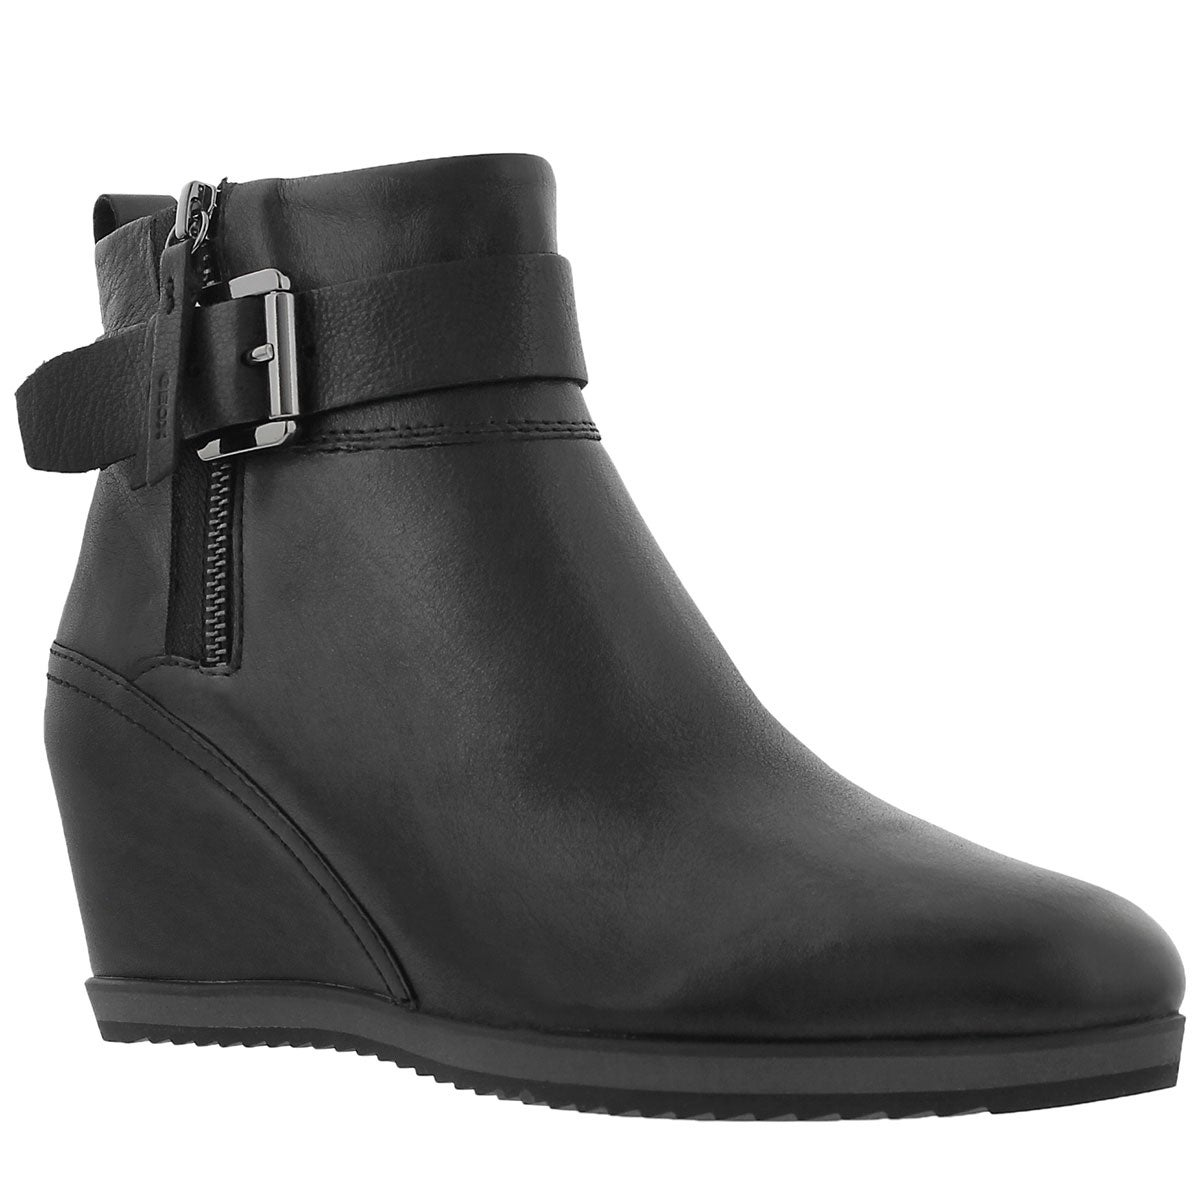 Lds Illusion black low dress wedge boot